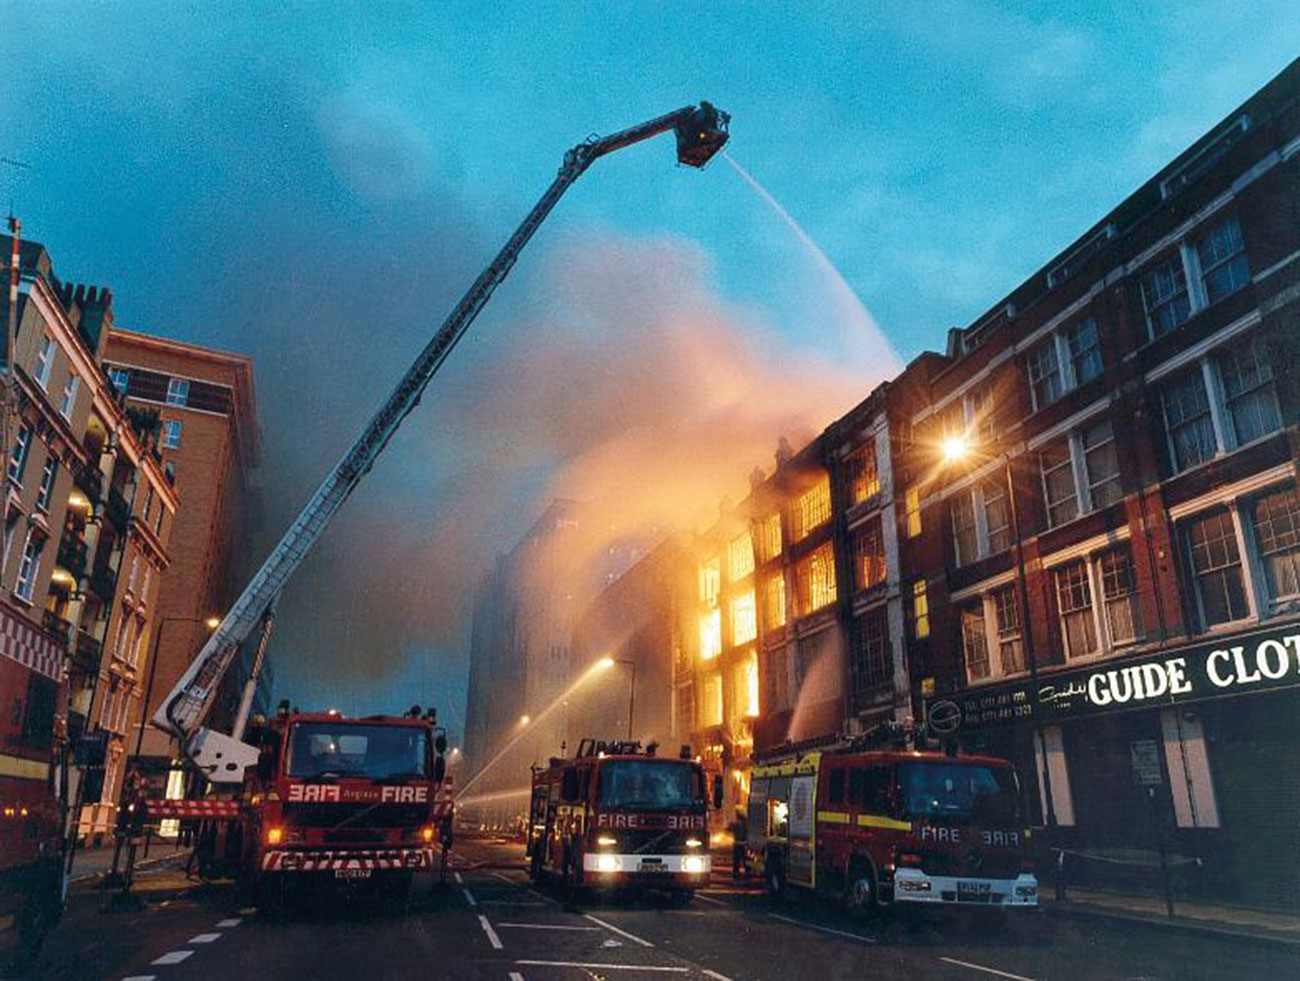 This dramatic night-time image of firefighting operations in progress during an eight-pump fire in a commercial premises in East London highlights the possible post-fire legal disputes over fire-protection standards that are described in this article.